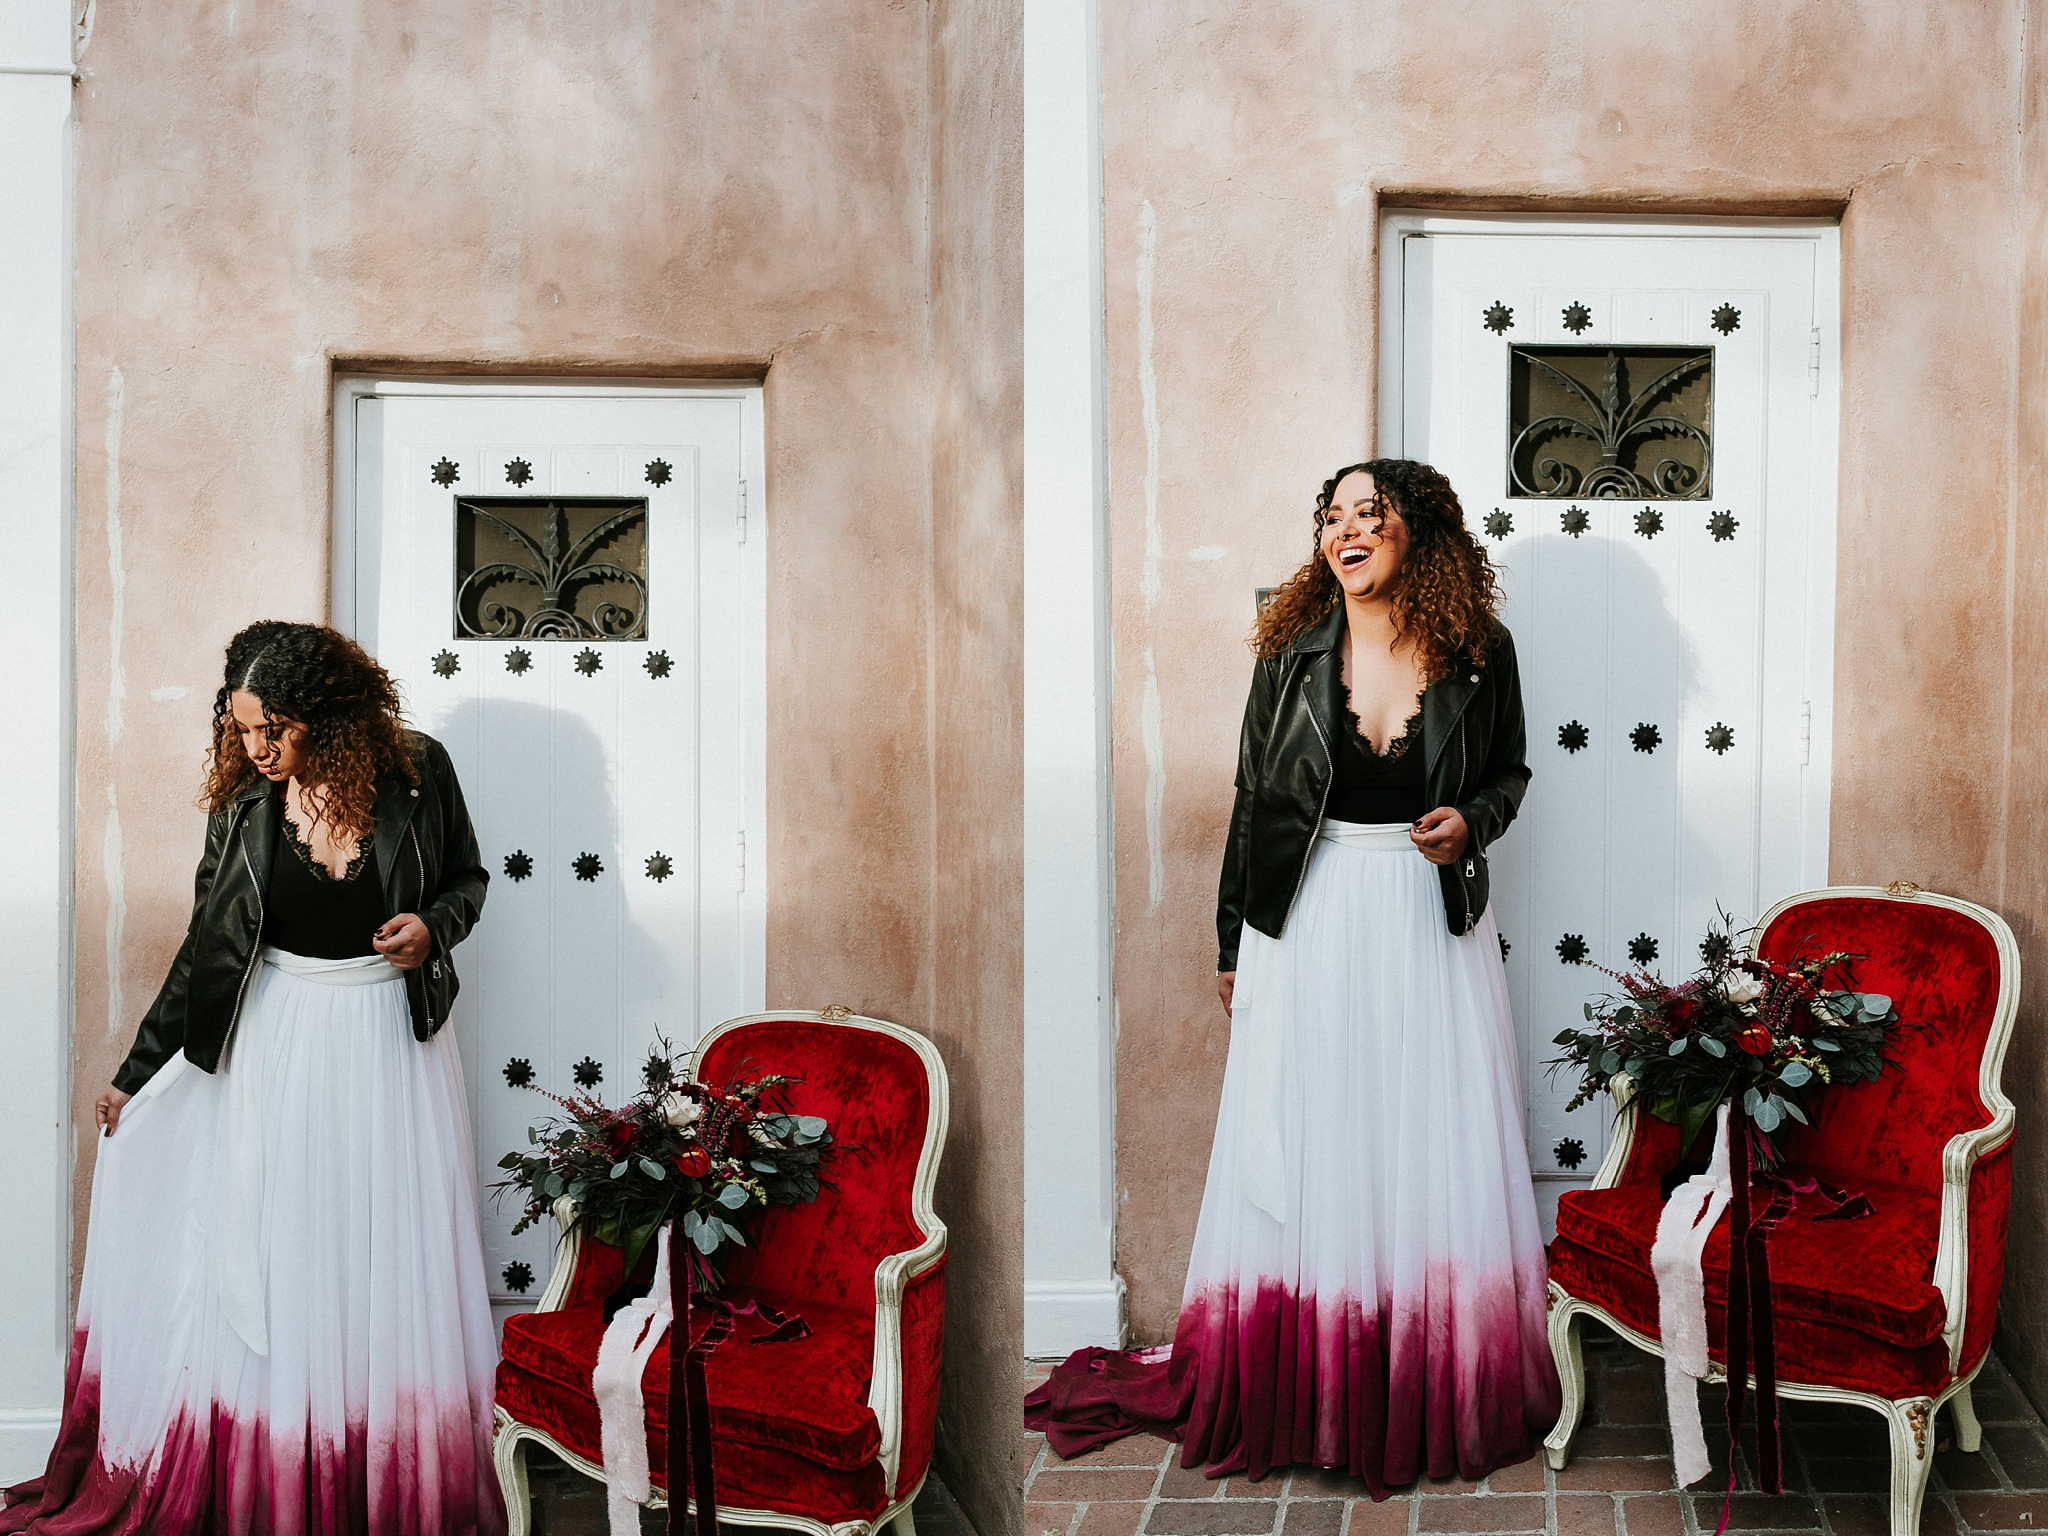 Alicia+lucia+photography+-+albuquerque+wedding+photographer+-+santa+fe+wedding+photography+-+new+mexico+wedding+photographer+-+albuquerque+wedding+-+santa+fe+wedding+-+wedding+gowns+-+non+traditional+wedding+gowns_0019.jpg